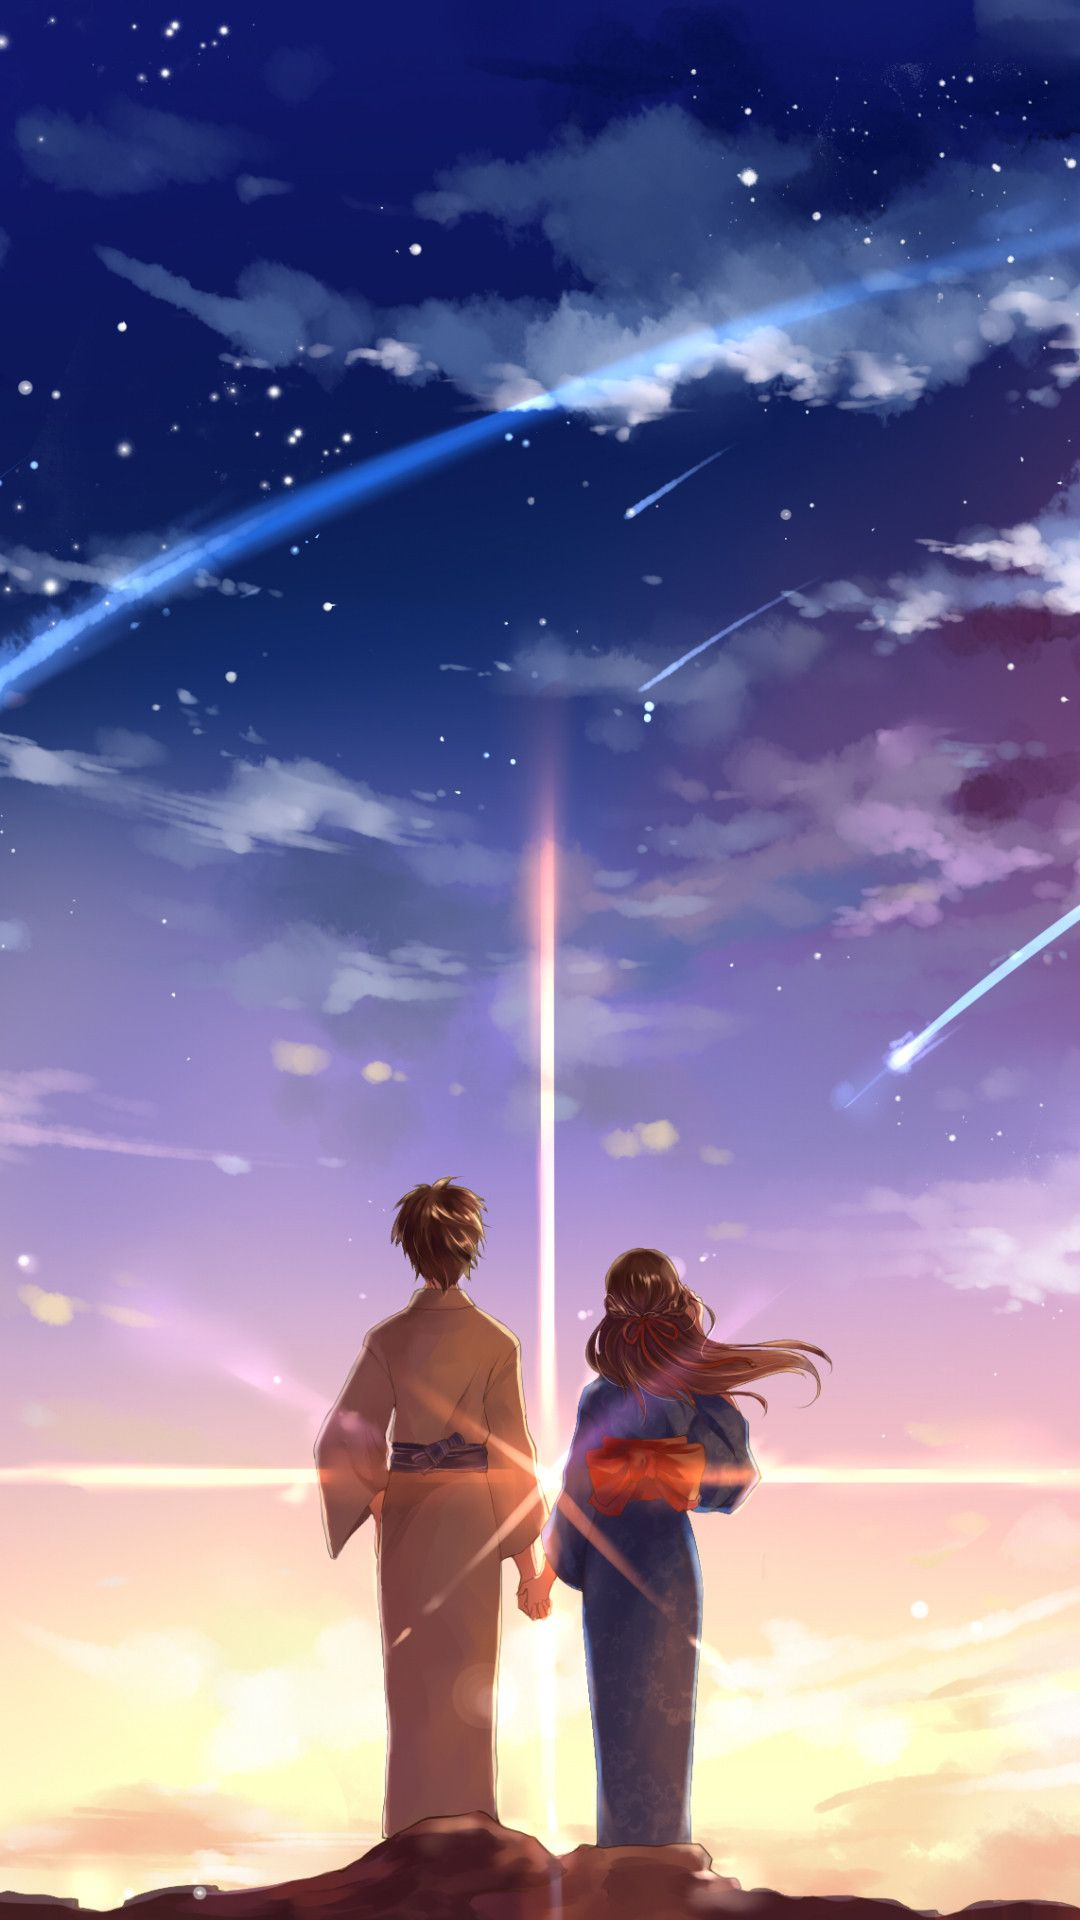 Your Name Anime Wallpapers Top Free Your Name Anime